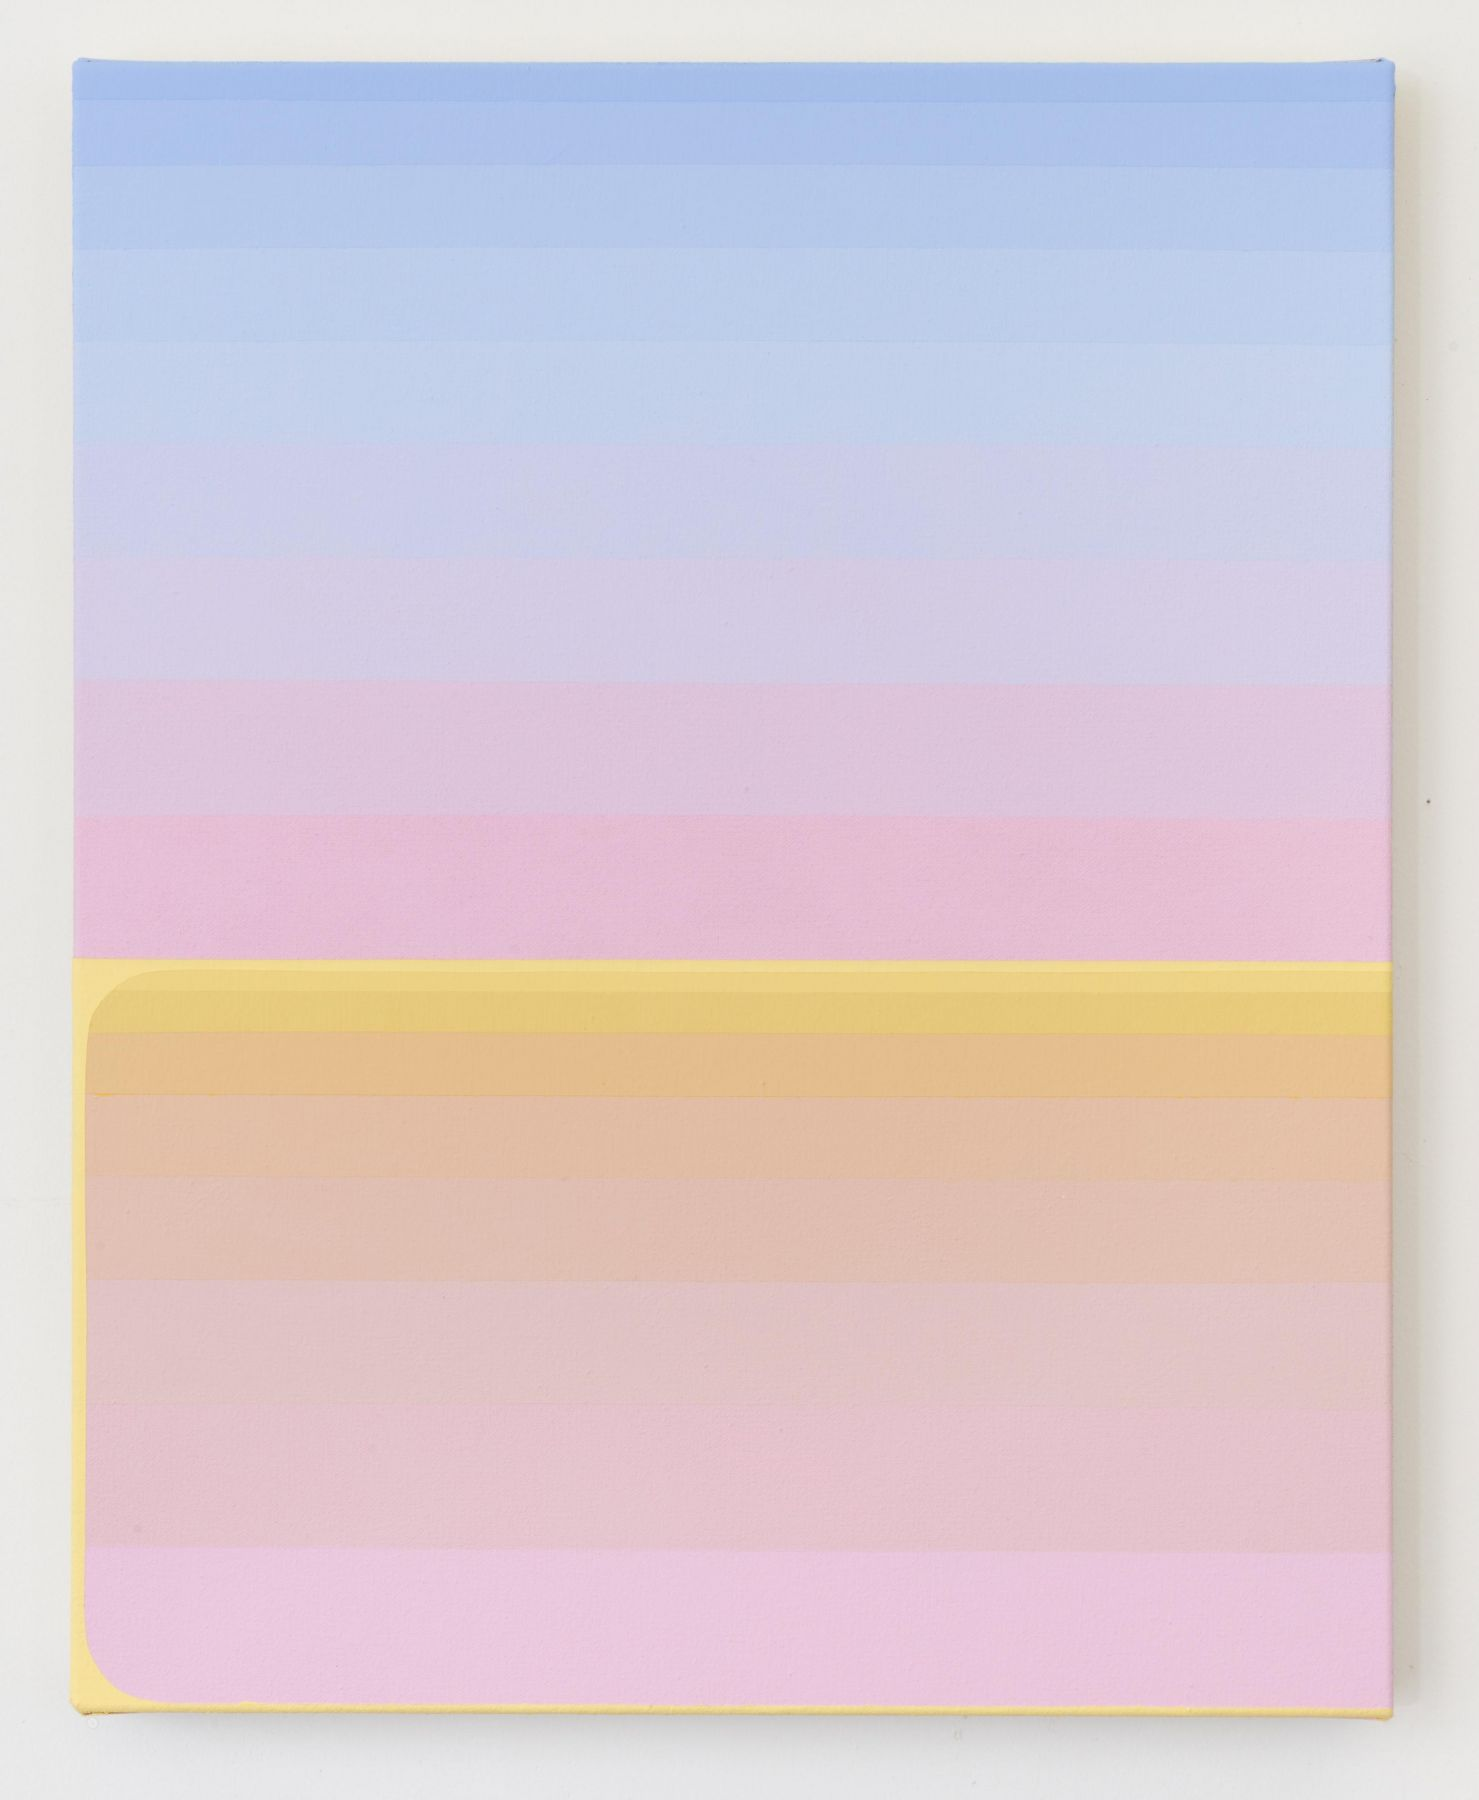 Audrey Stone, Yellow Hold, 2018